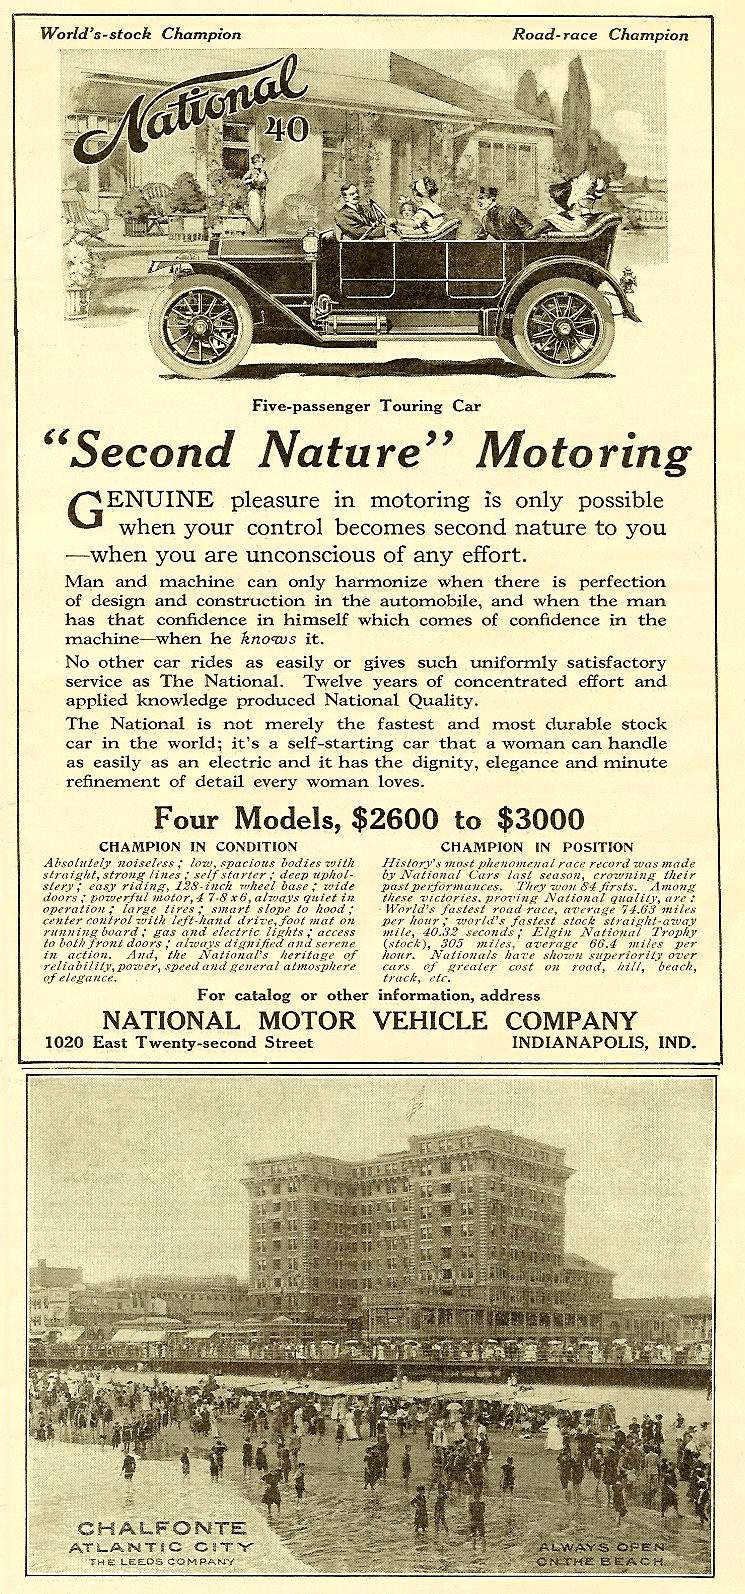 """1912 3 9 National 40 """"Second Nature"""" Motoring Harper's Weekly Advertiser magazine March 9, 1912 5″x7″ page 25"""